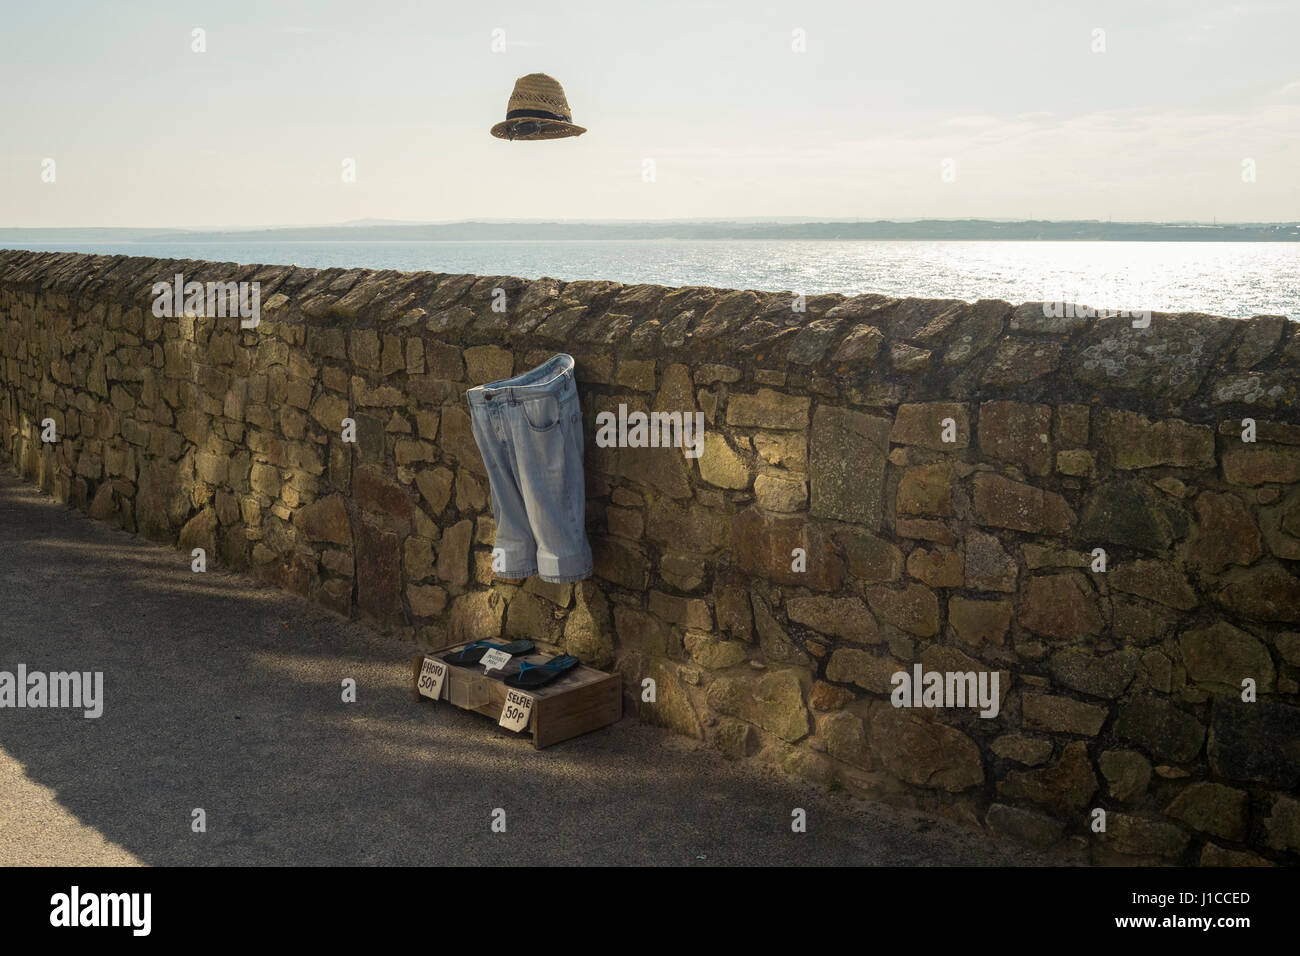 An invisible man installation at St Ives, Cornwall where tourists and locals can take a selife with the invisible - Stock Image